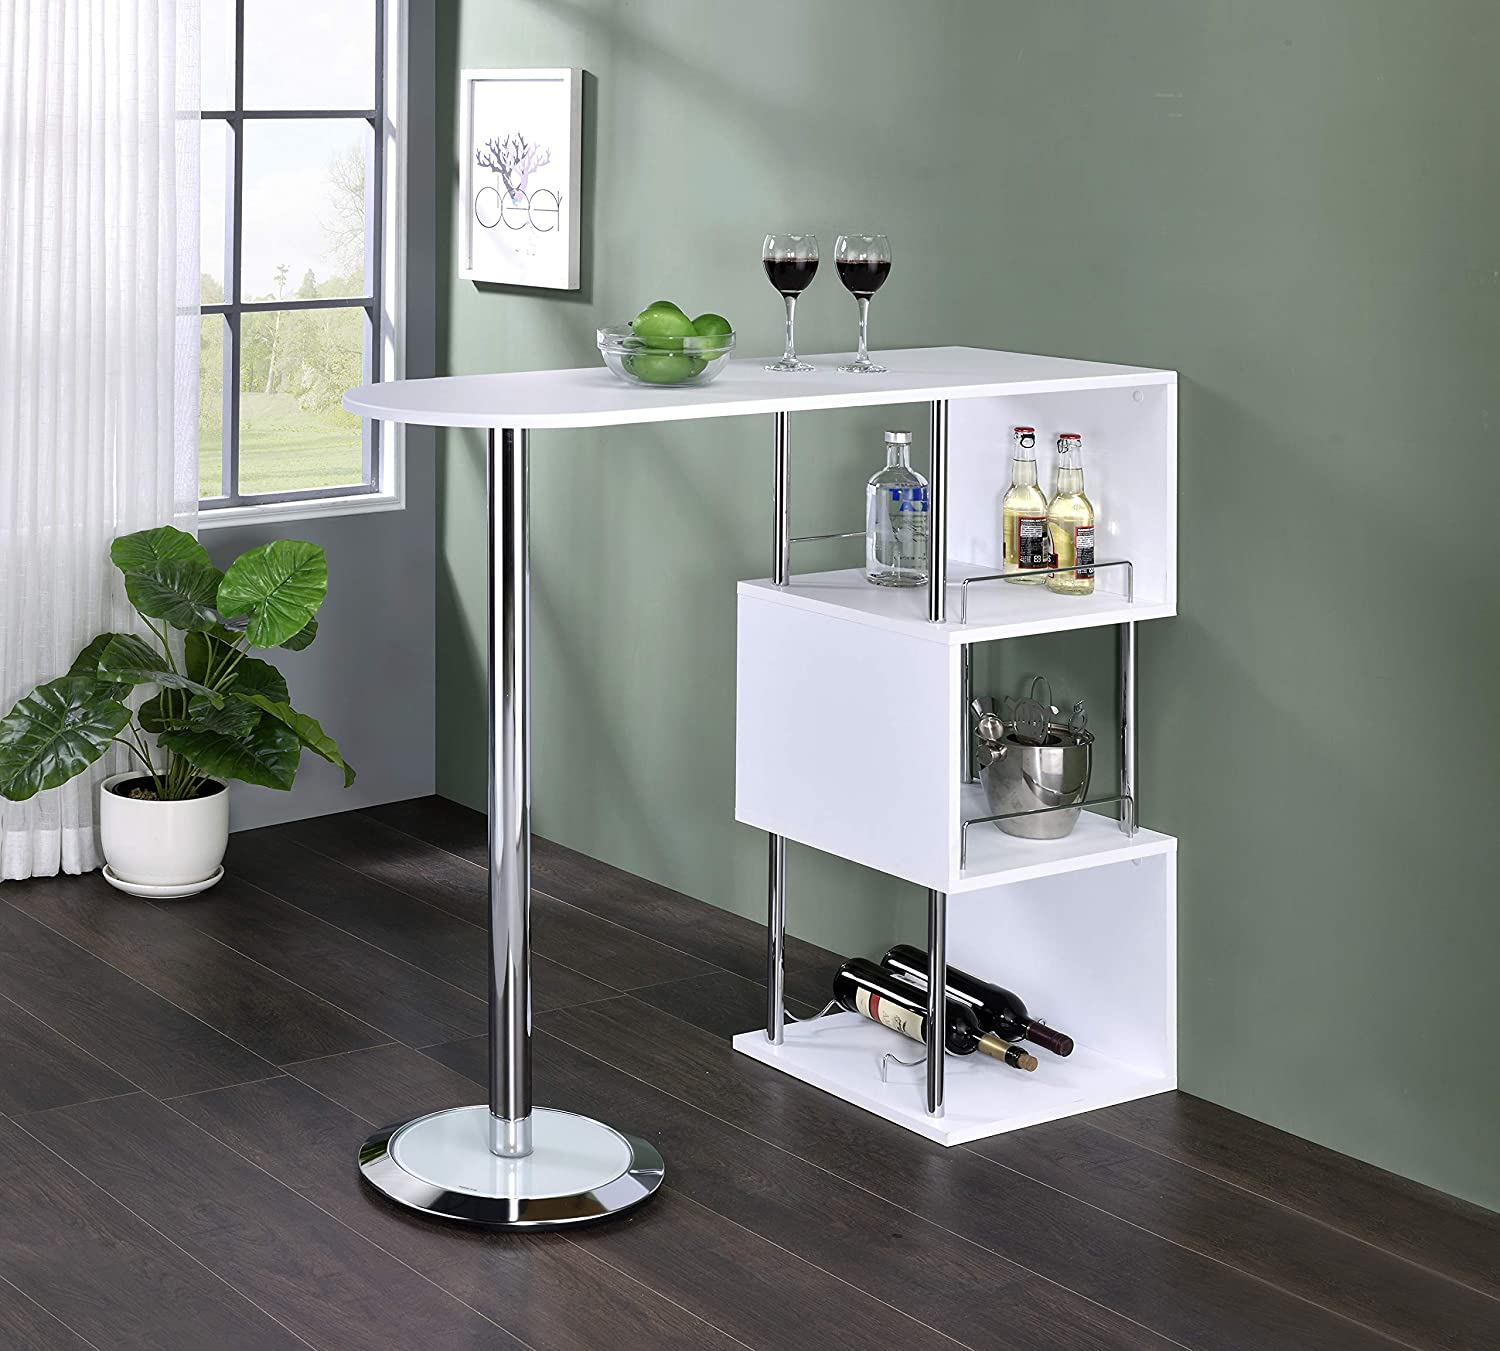 Kings Brand Cheap mail order specialty store Furniture - Minorca Modern Table Wine Shelves w Very popular Bar